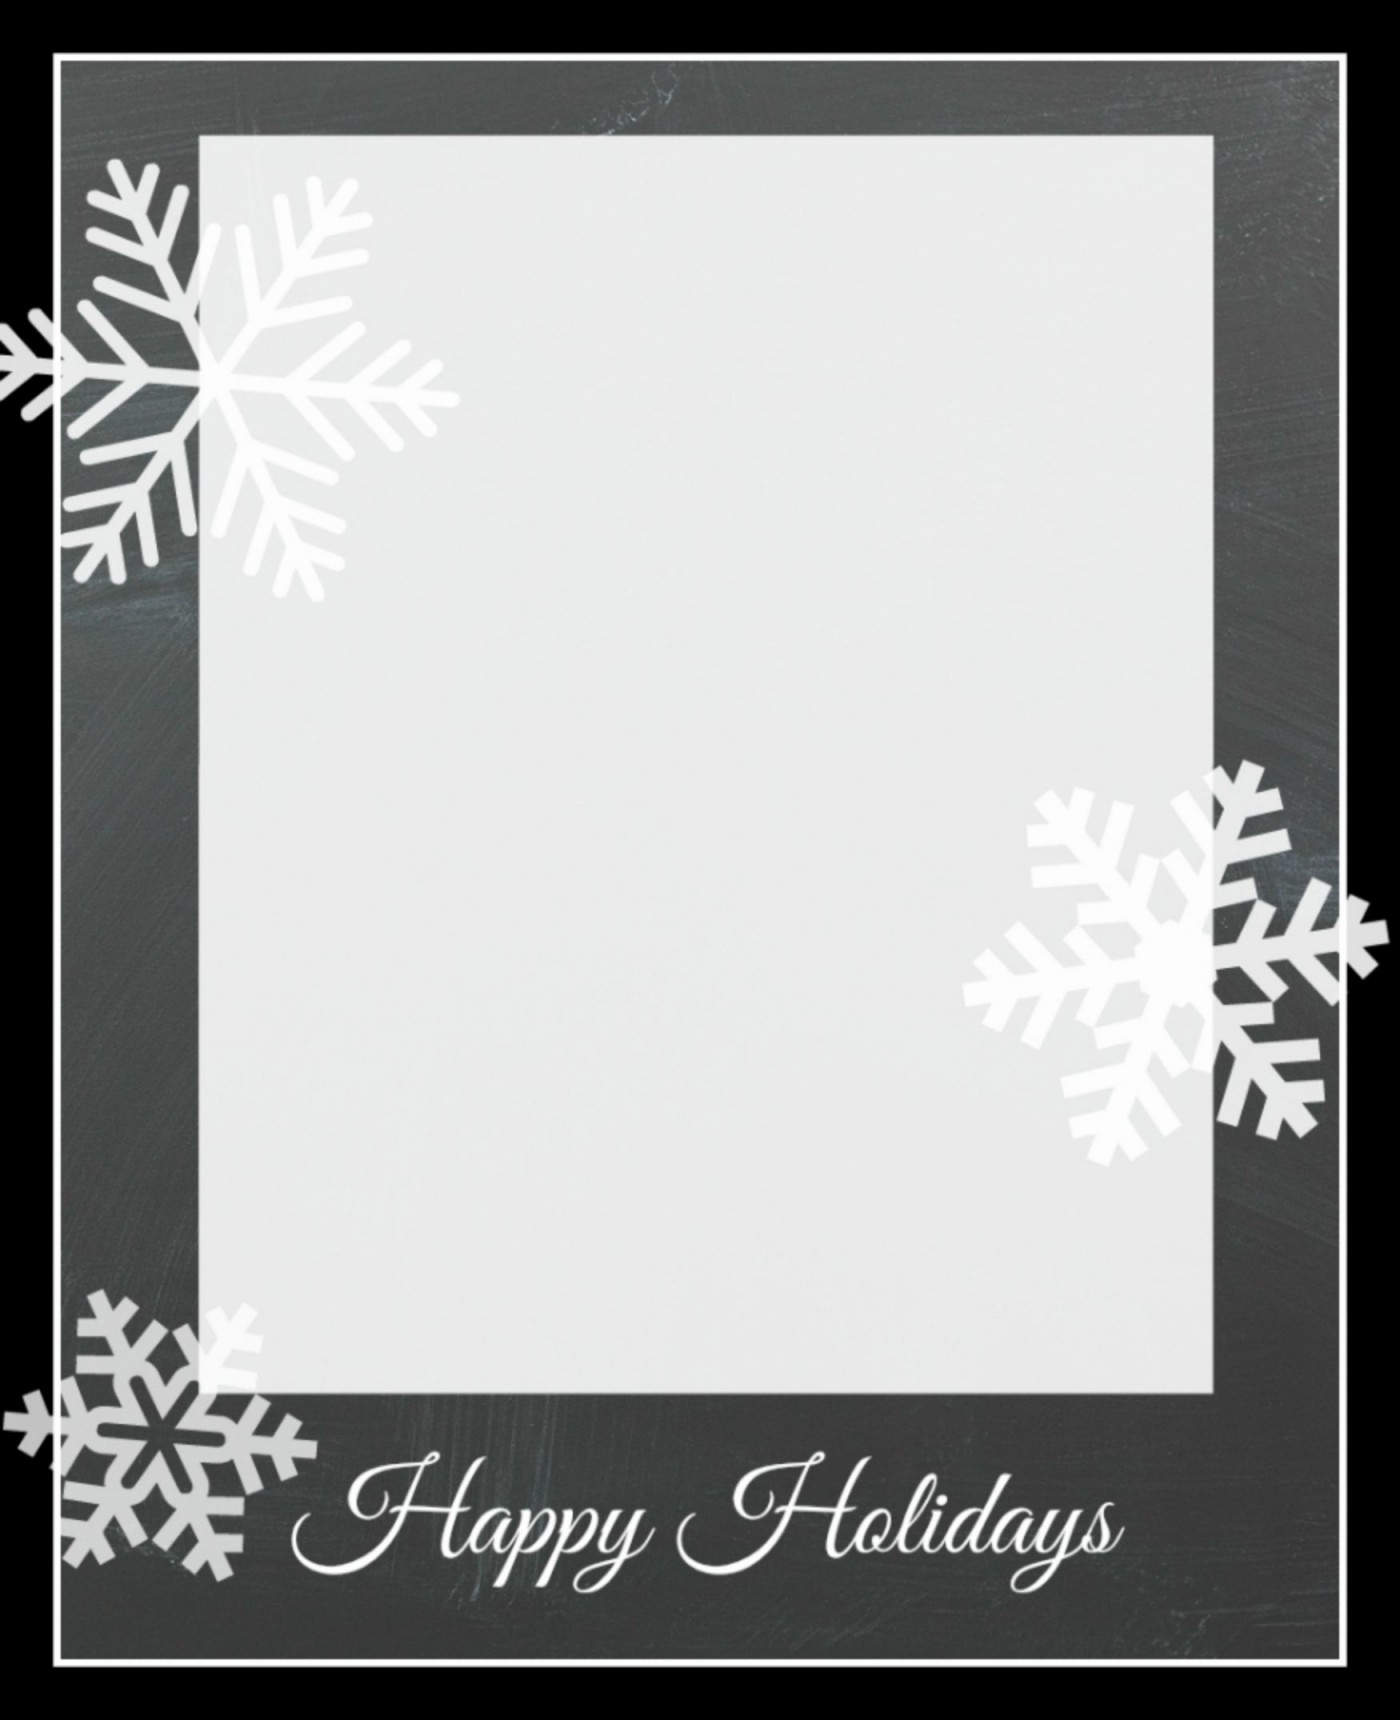 010 Remarkable Free Photo Card Template Idea  Printable Holiday Christma Download1400